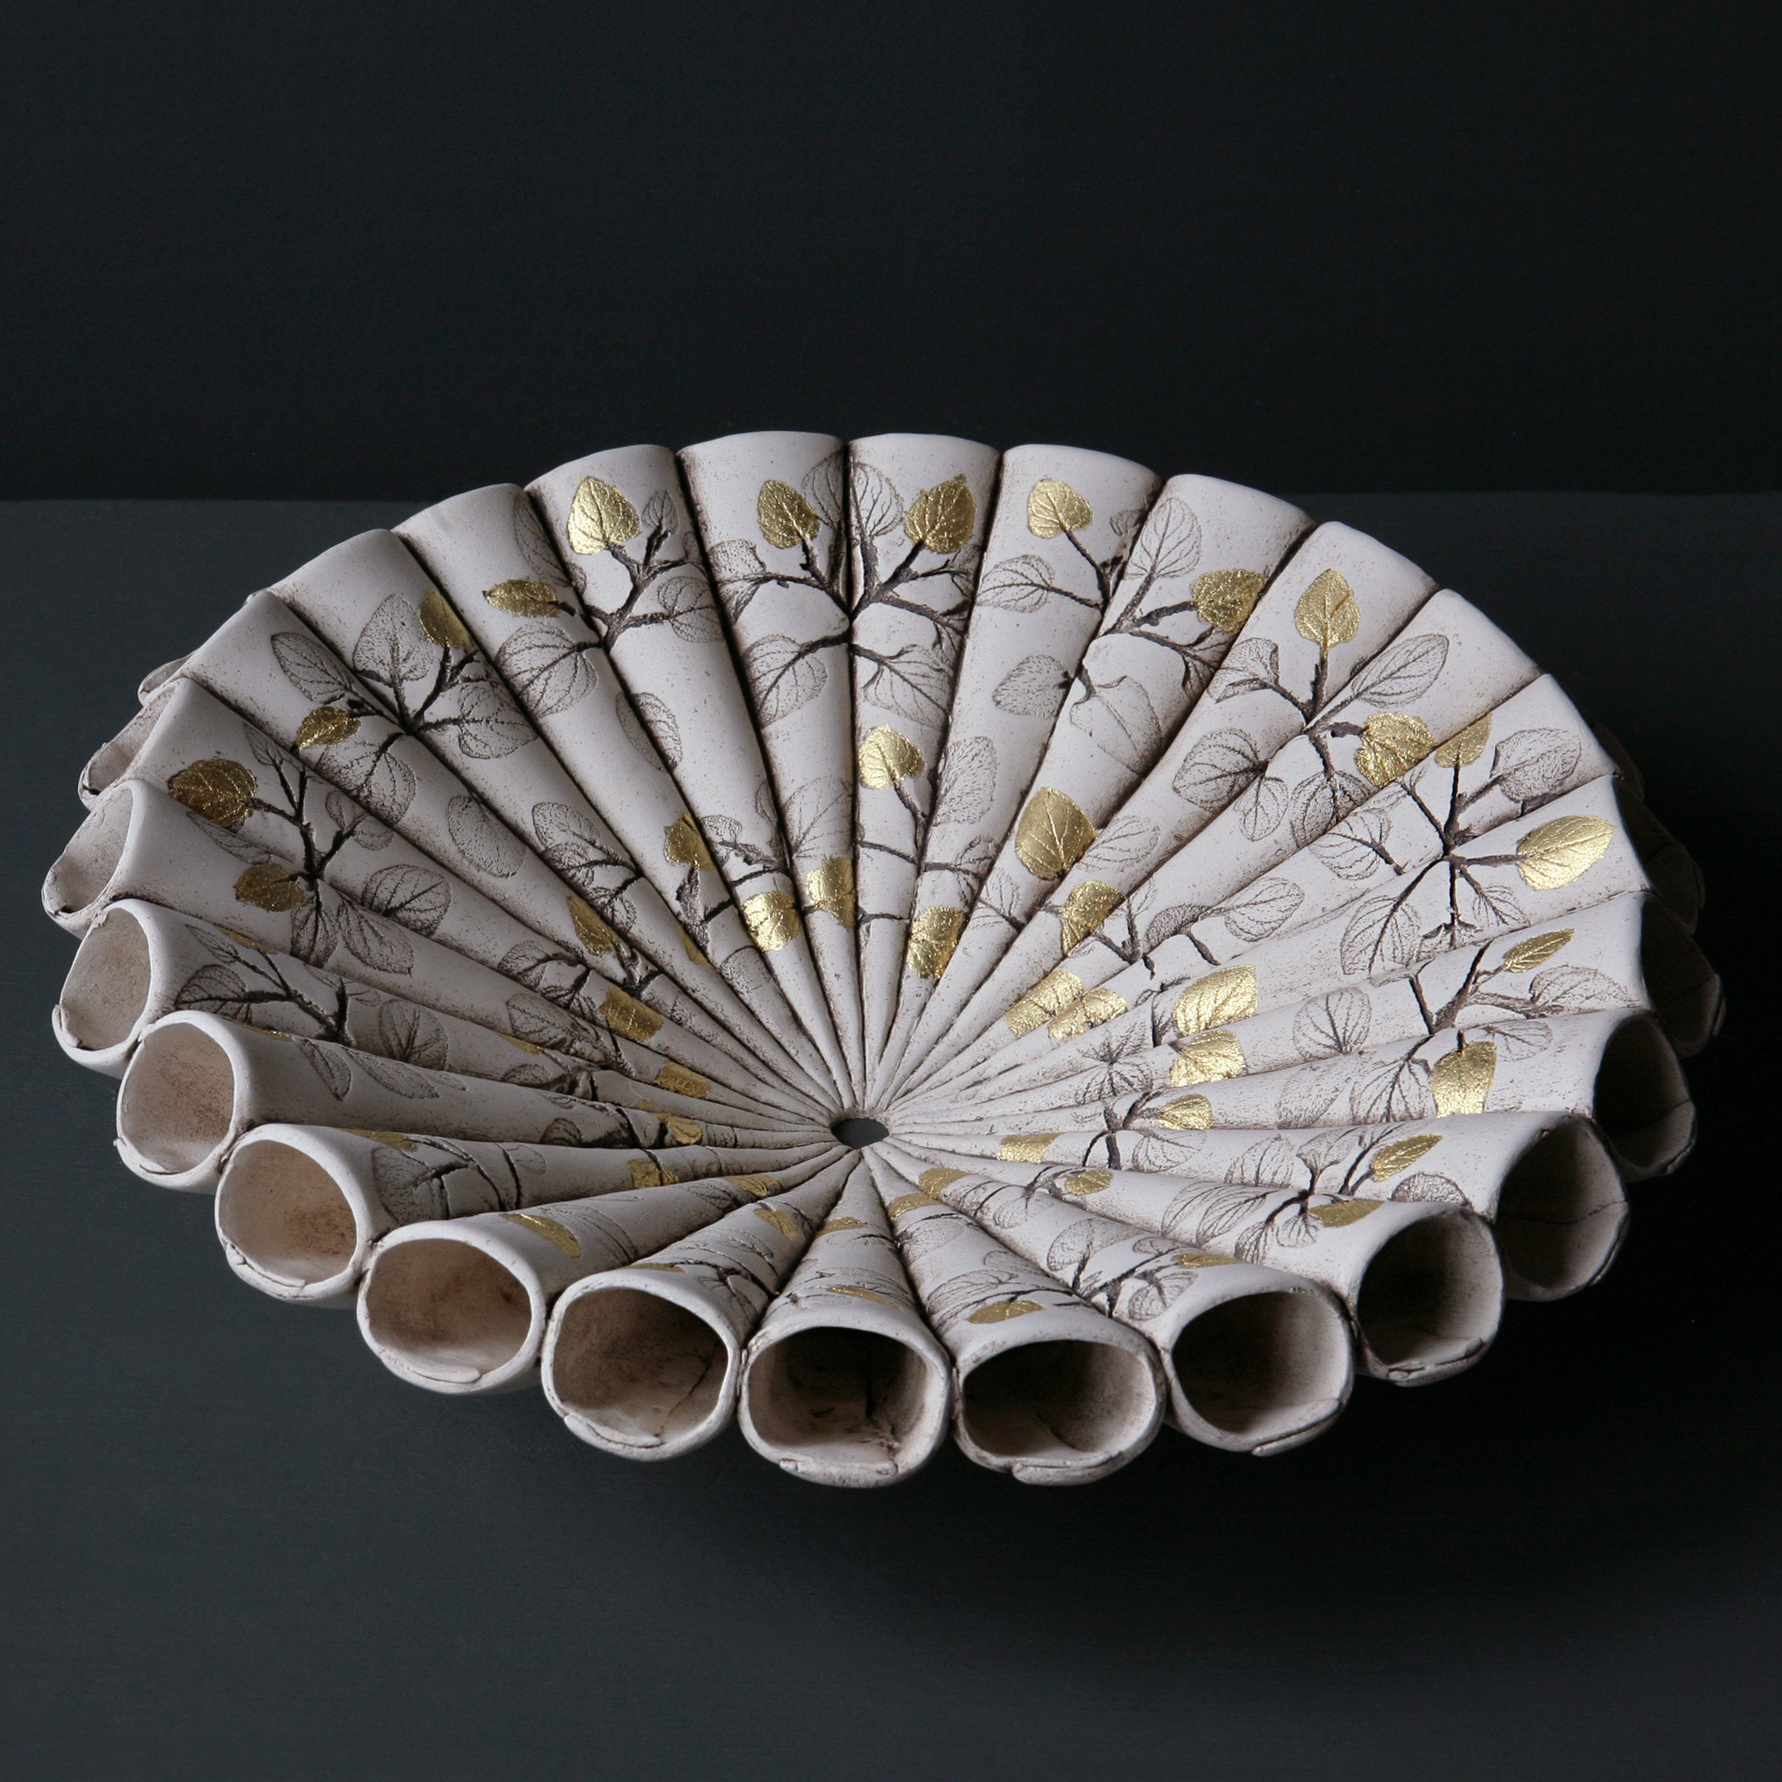 Medium Leaf Cone Bowl with 24ct Gold Leaf Detail